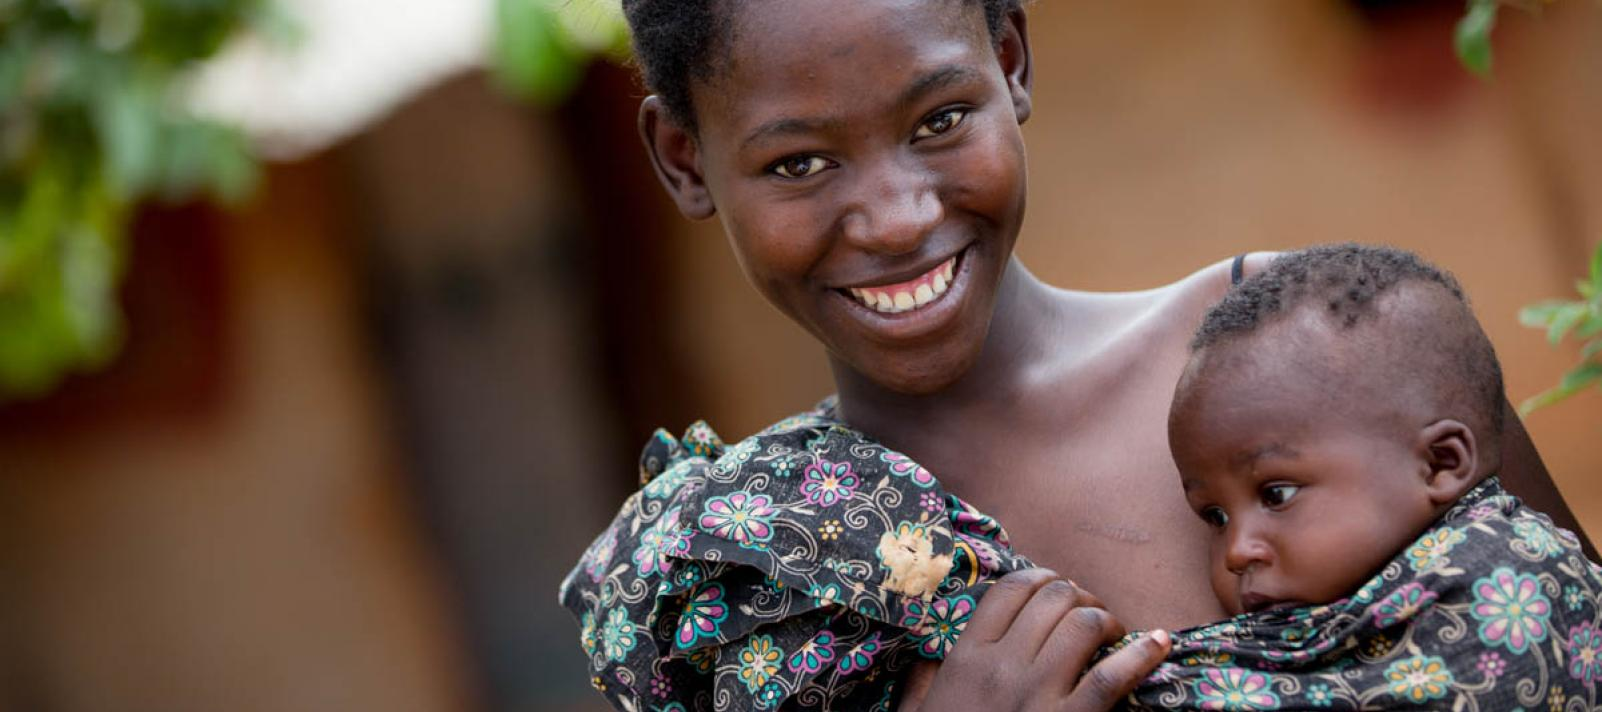 A smiling mother carrying a baby in a wrap